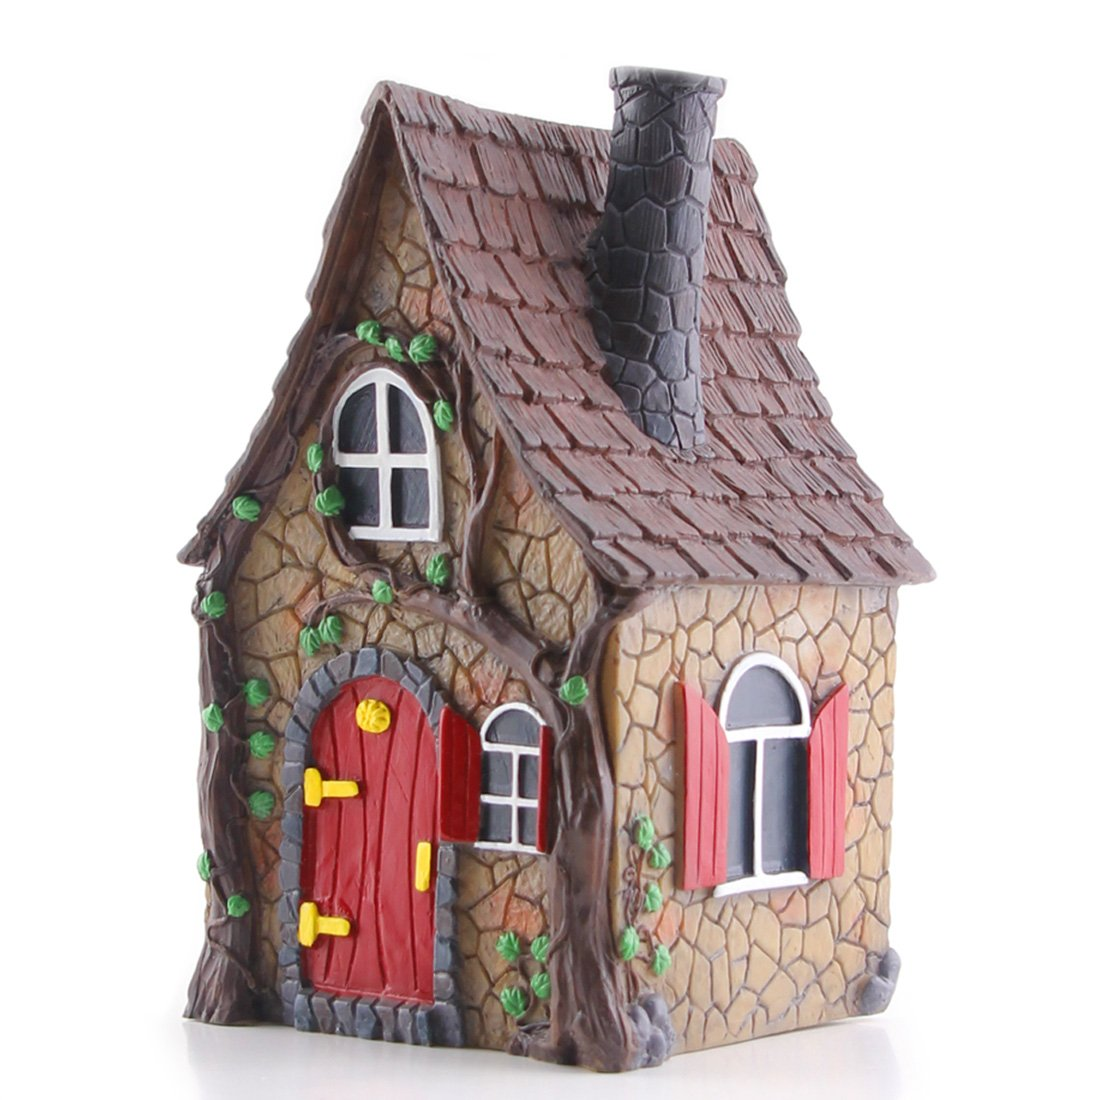 "Fairy Garden House - Mini Ivy Cottage 7"" Tall By Fairying"